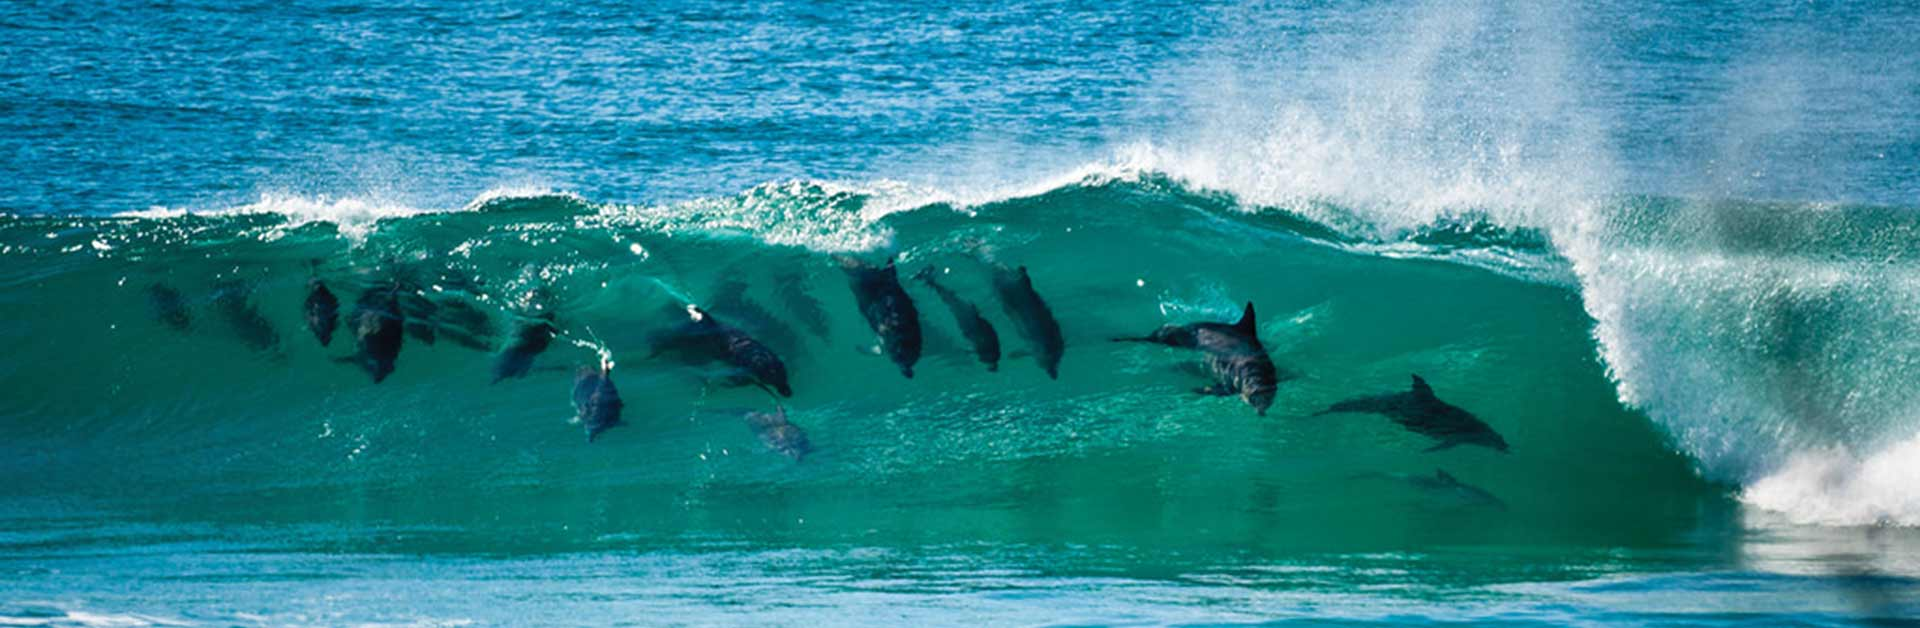 Dolphins surfing in the waves.